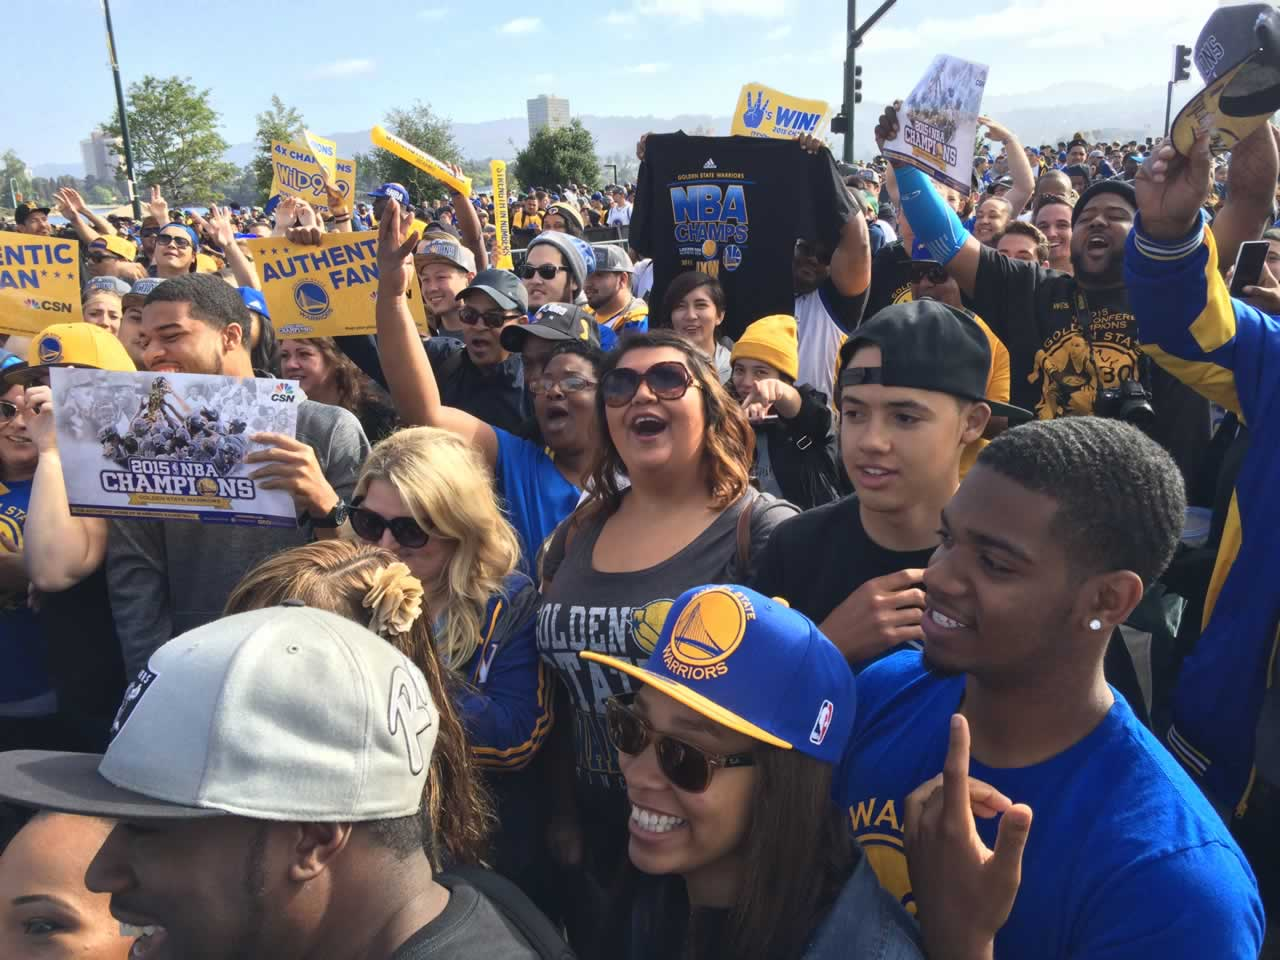 "<div class=""meta image-caption""><div class=""origin-logo origin-image none""><span>none</span></div><span class=""caption-text"">Dub Nation gathers at the Golden State Warriors parade in Oakland, Calif. on Friday, June 19, 2015. (KGO-TV)</span></div>"